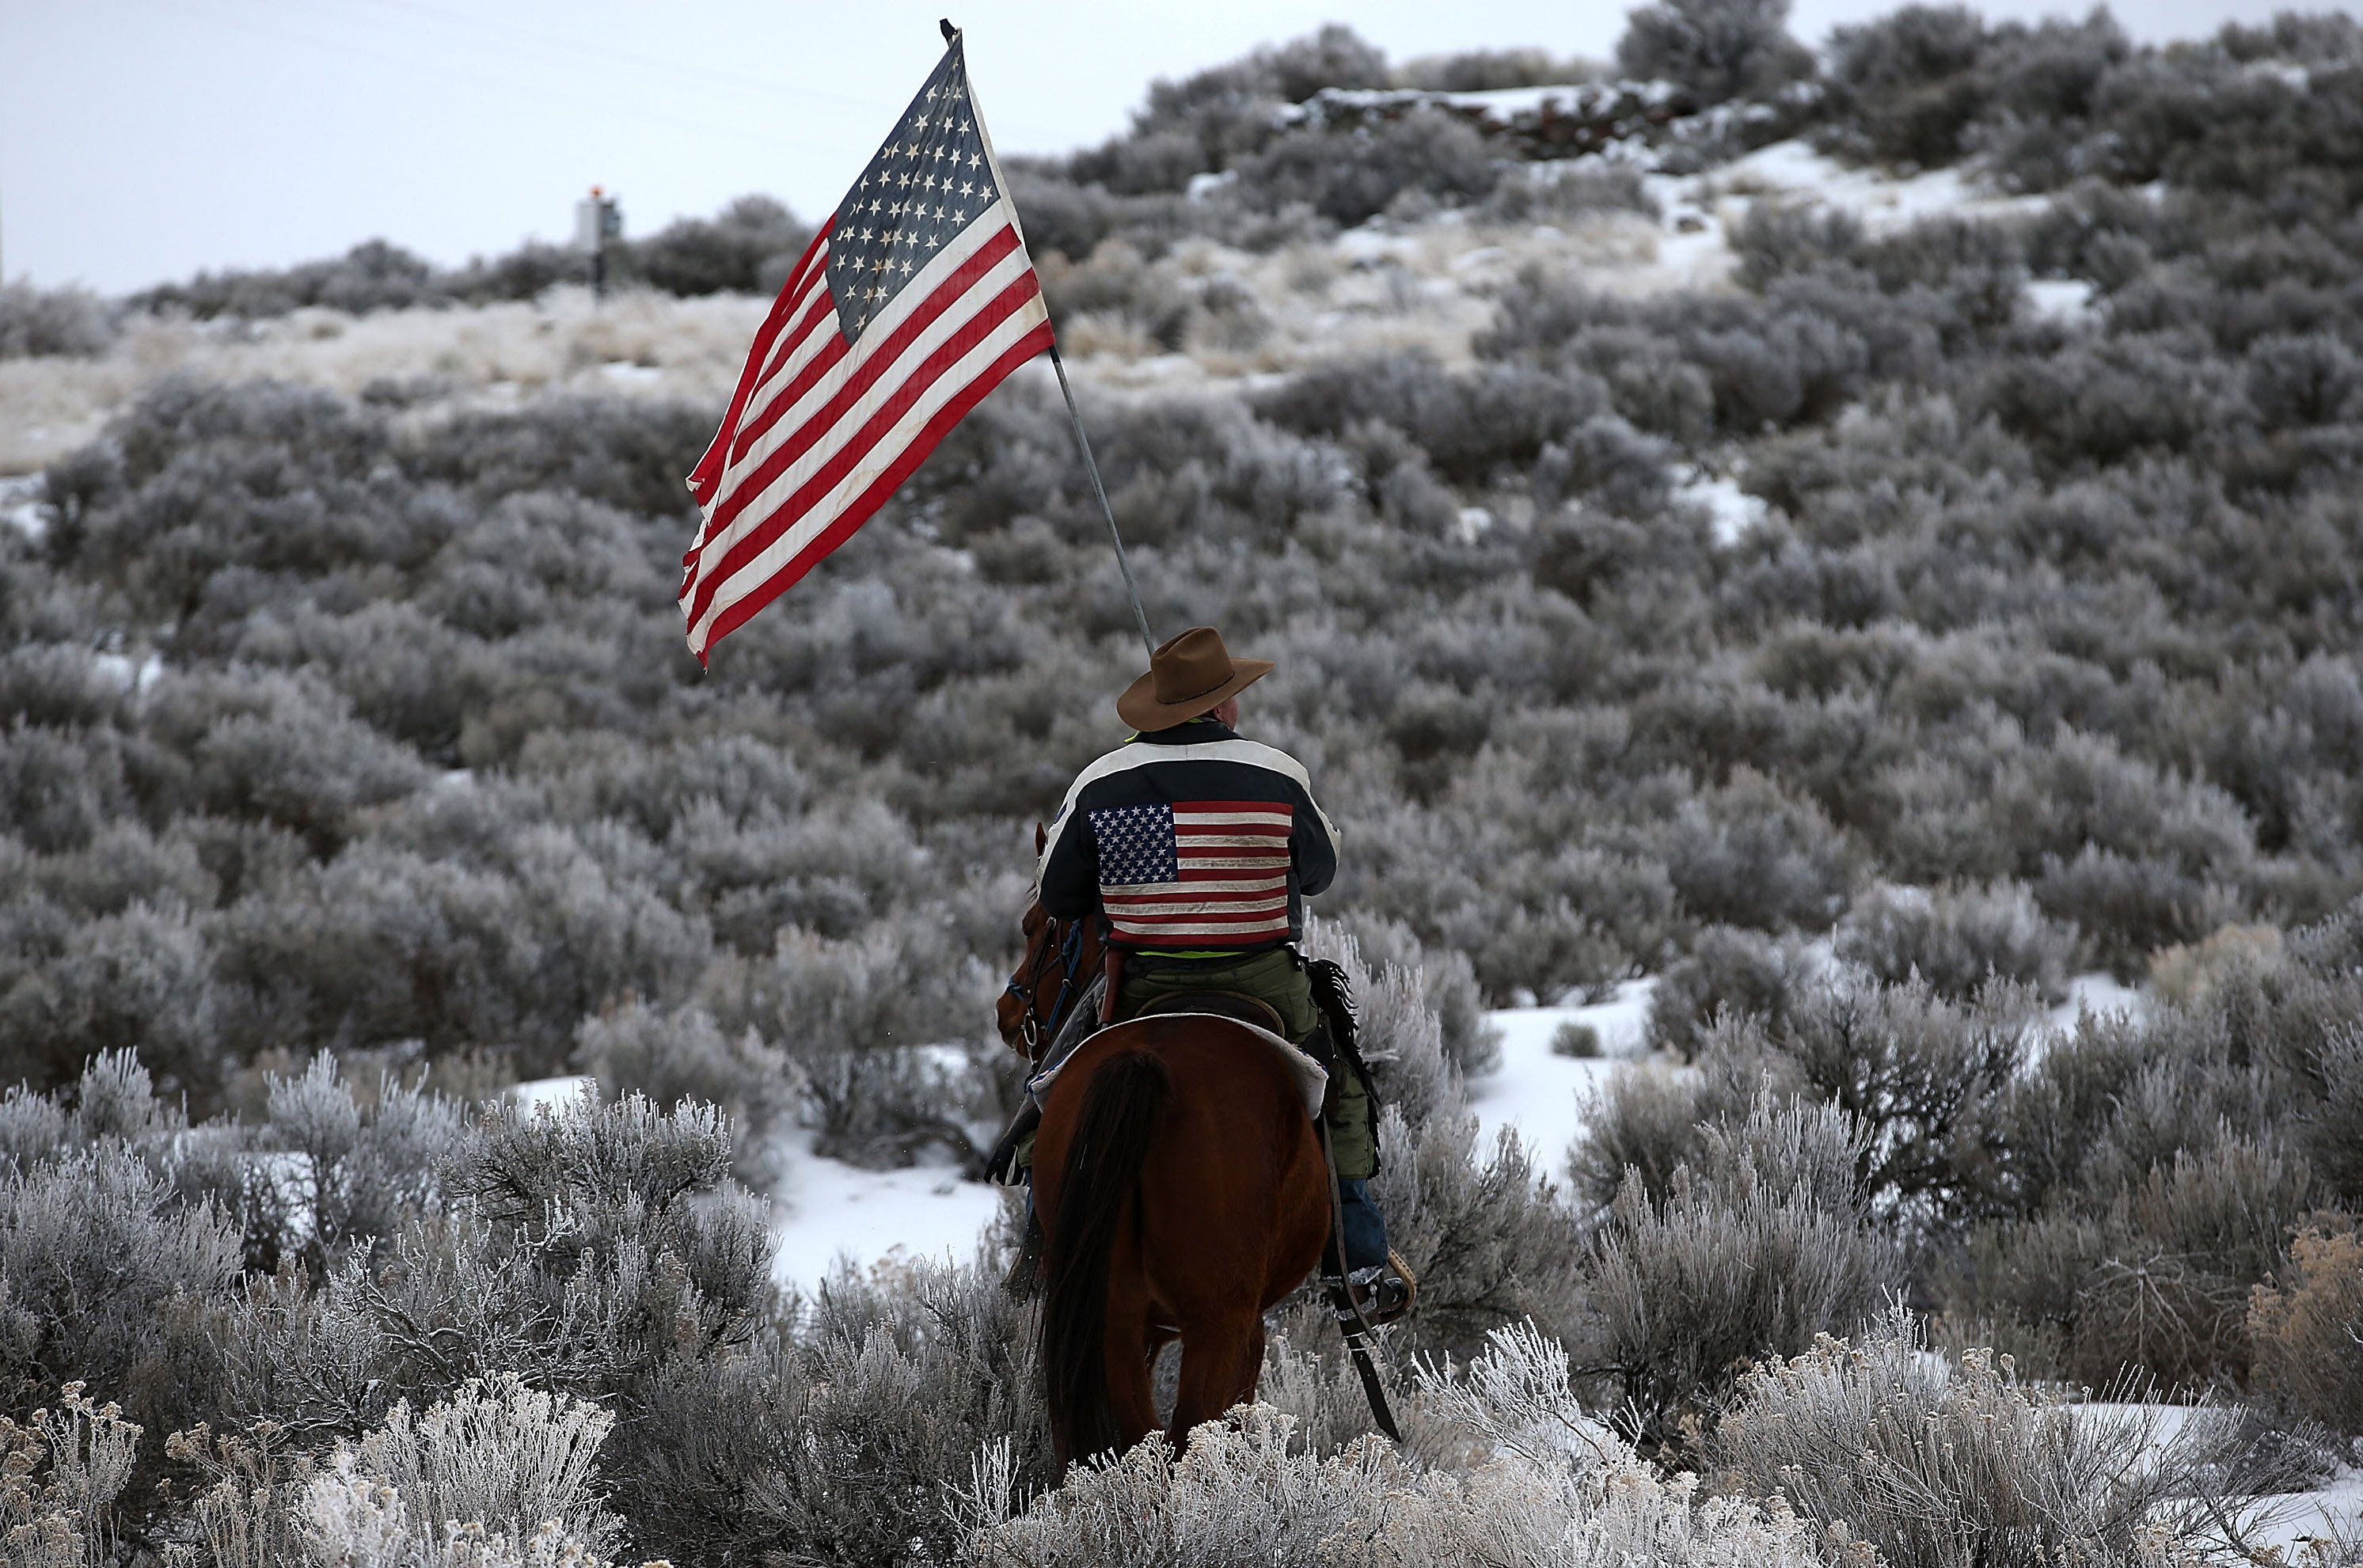 Dwayne Ehmer carries an American flag as he rides his horse on the Malheur National Wildlife Refuge near Burns, Ore., on Jan. 7, 2016.